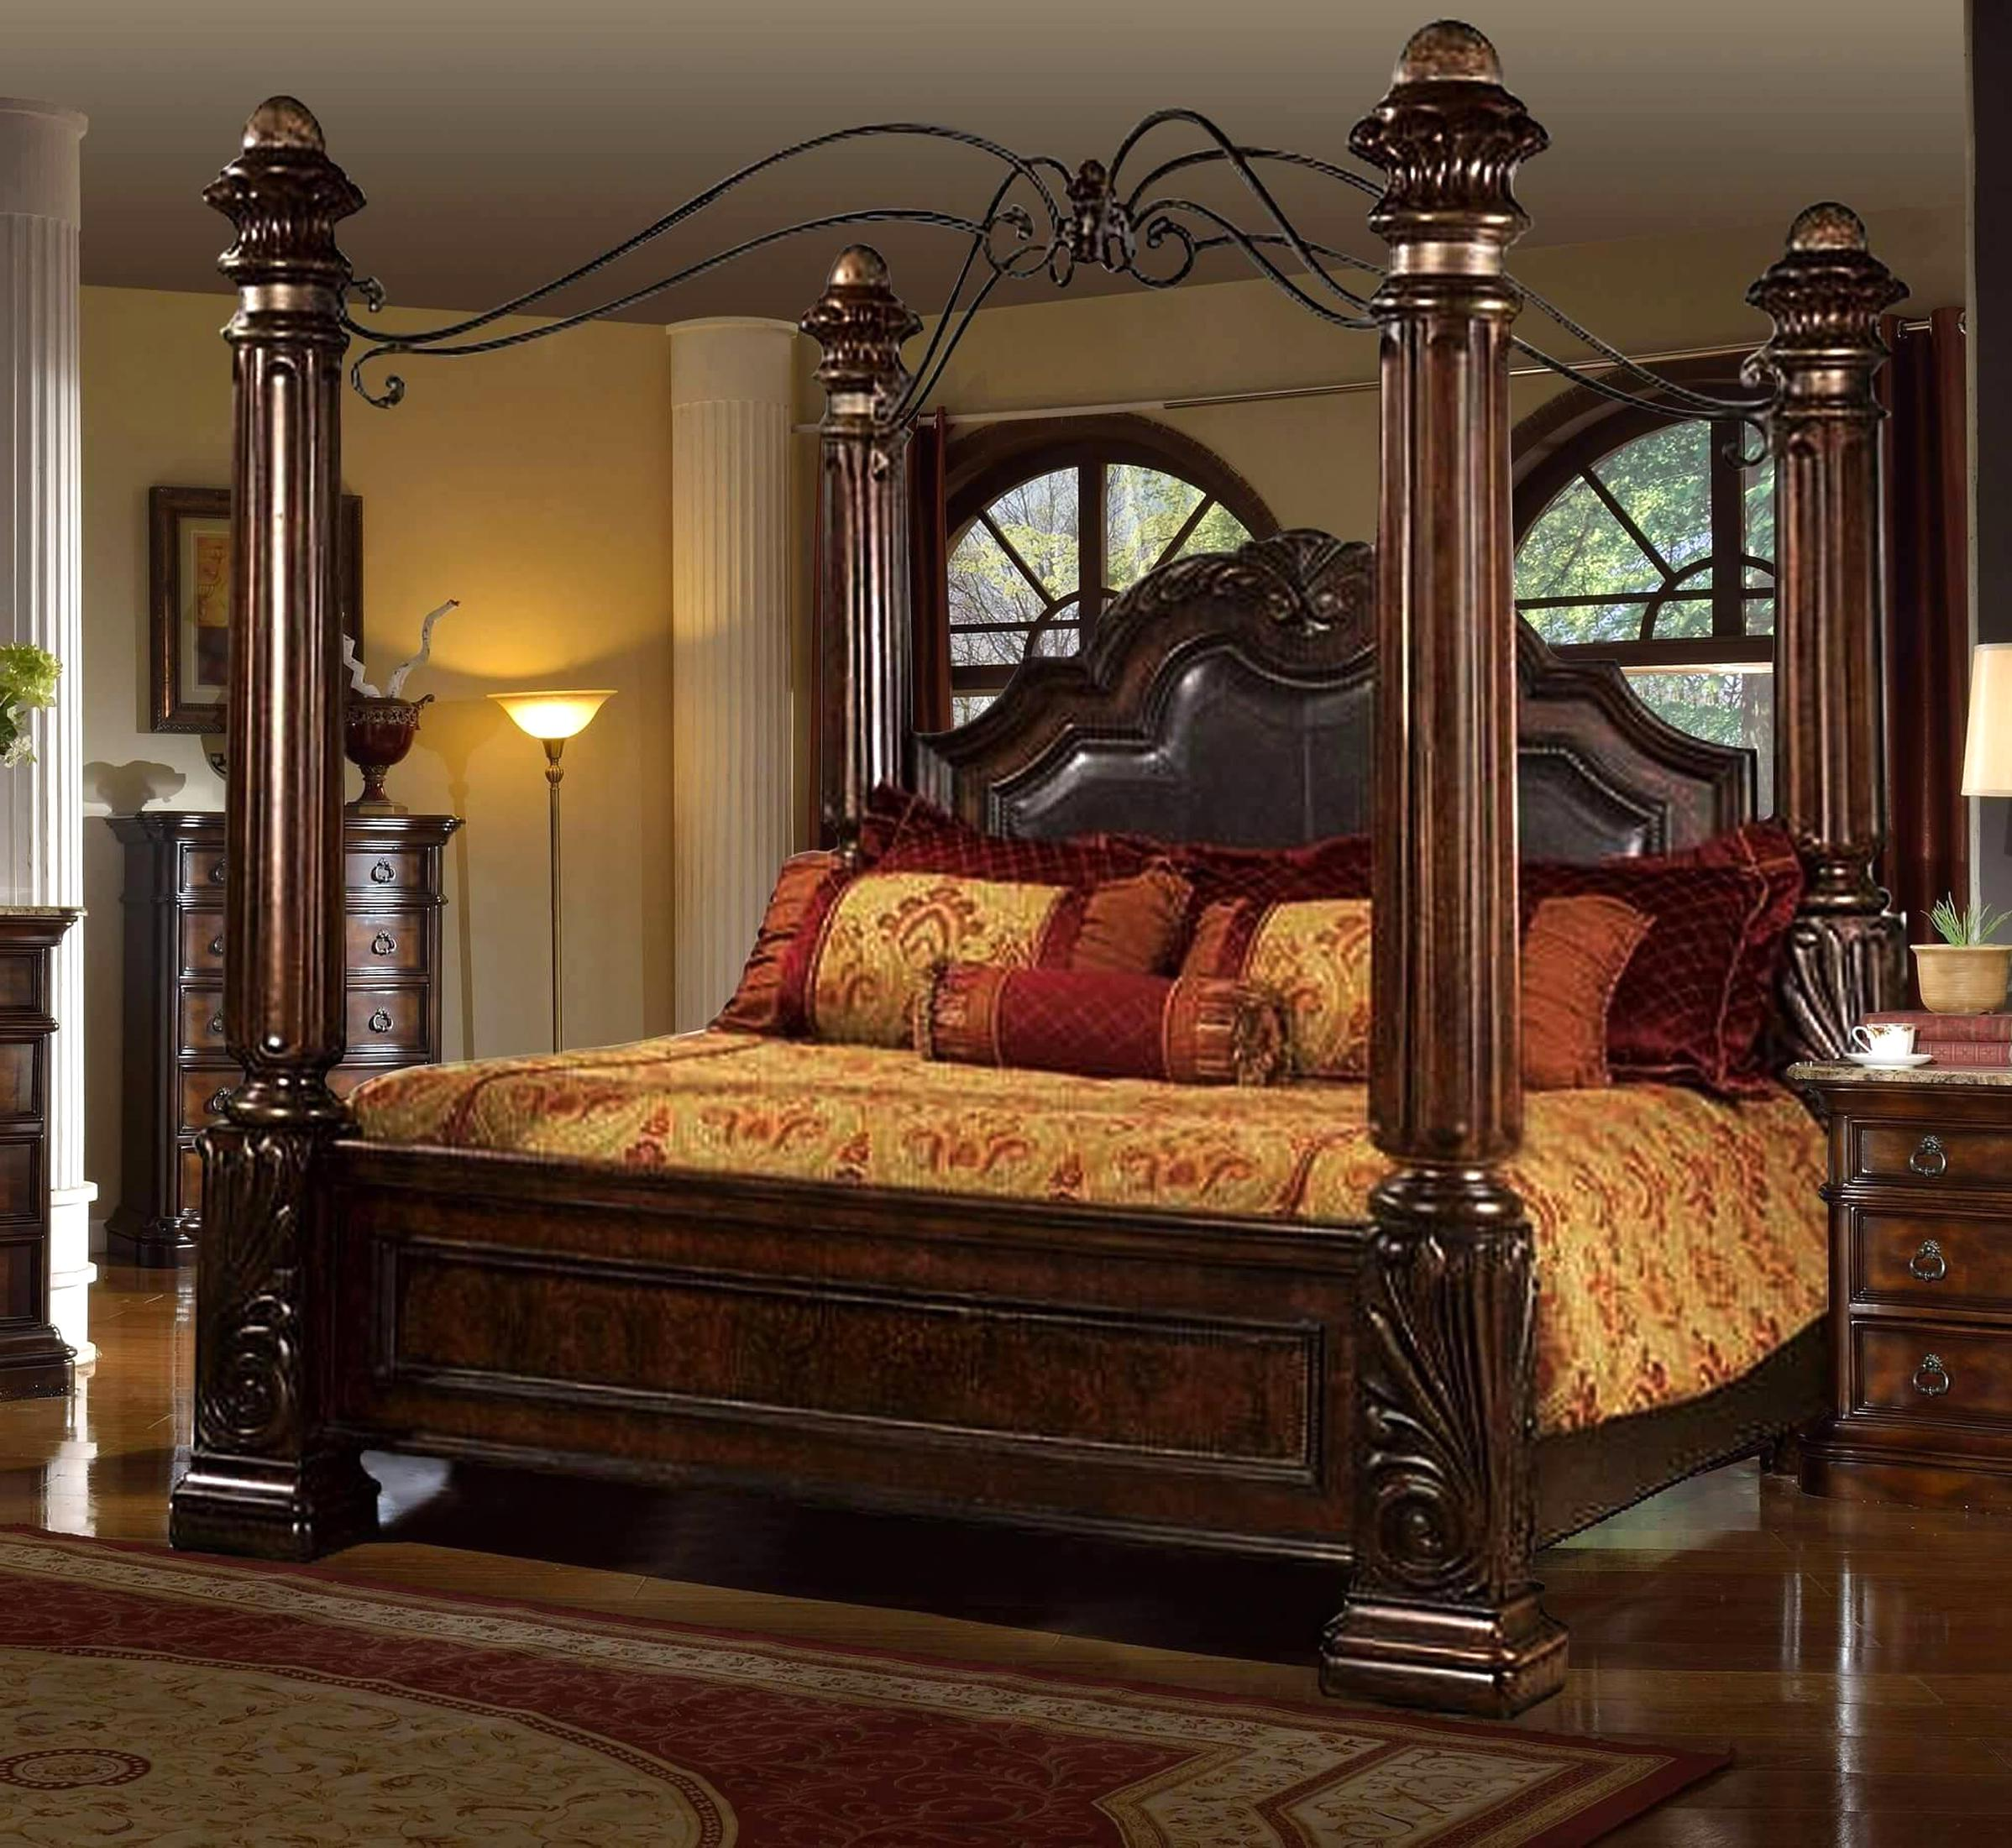 king canopy bed for sale